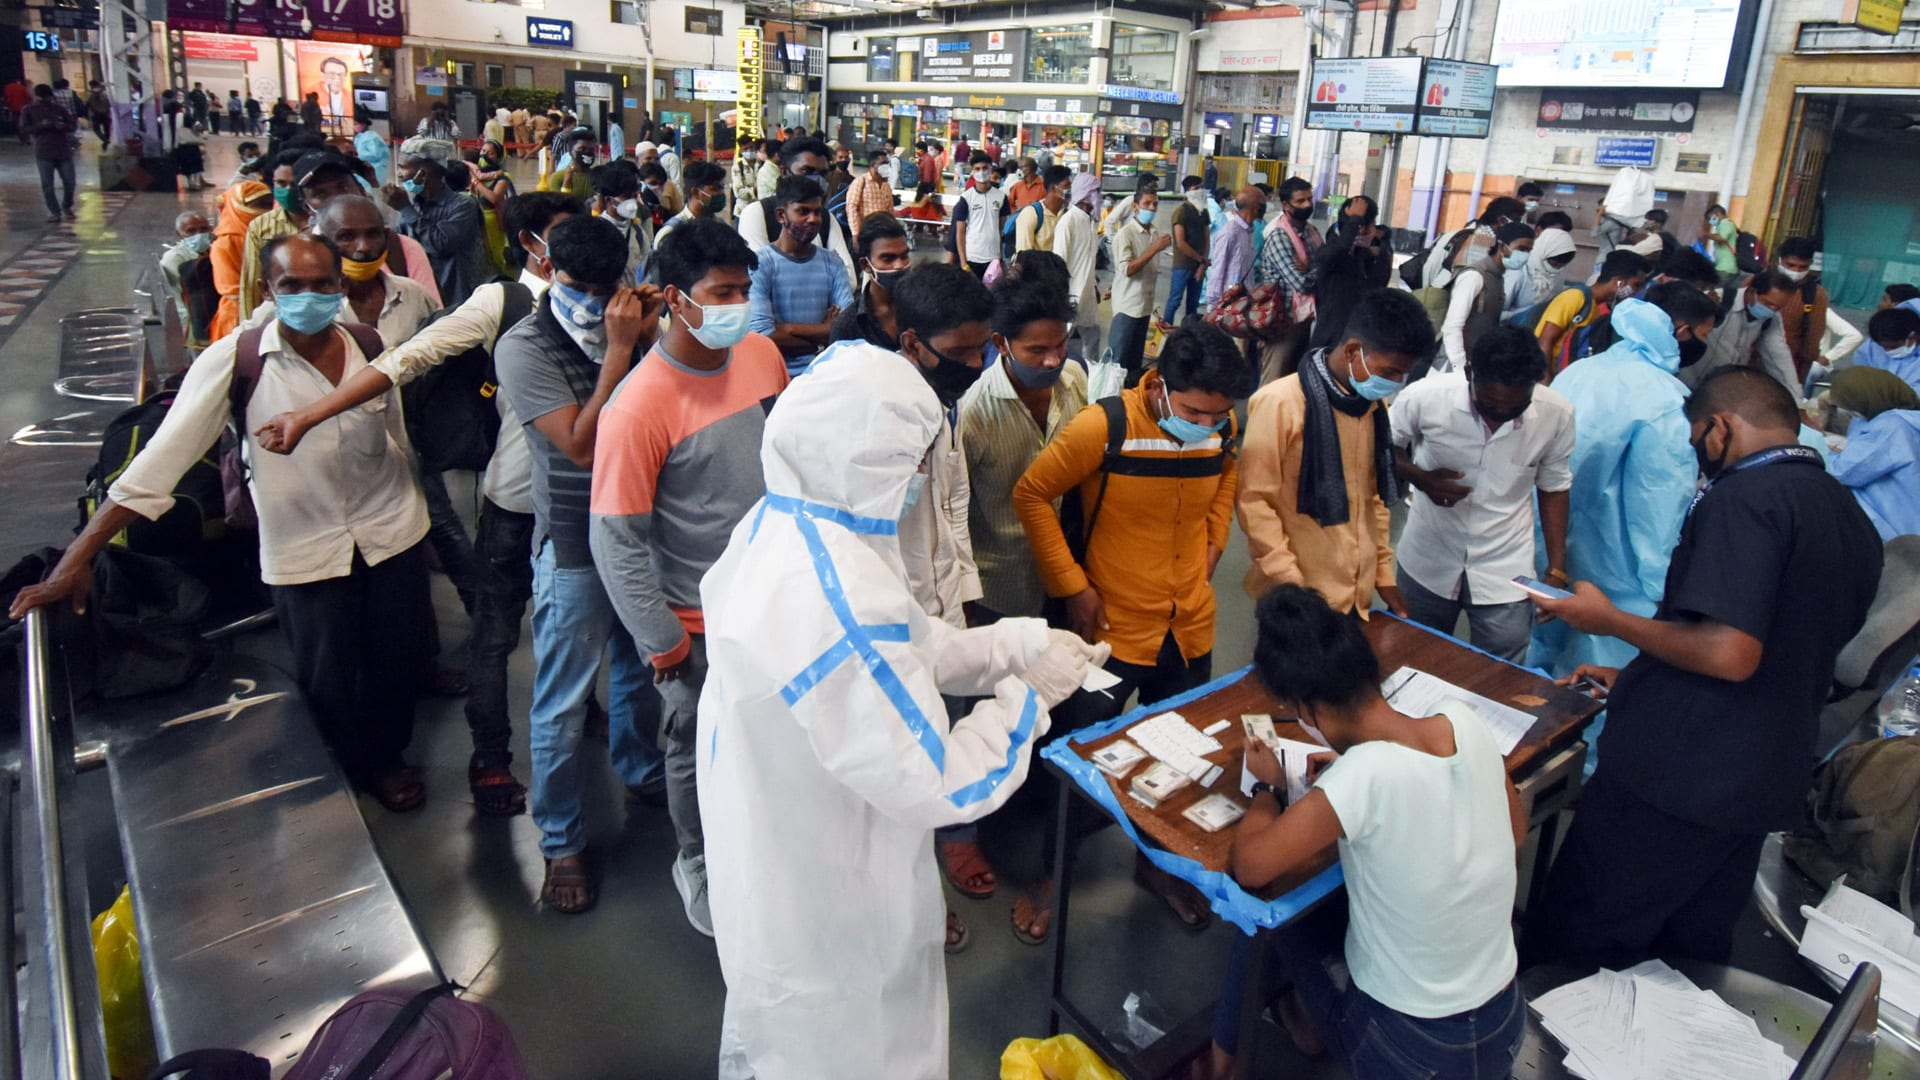 Maharshtra: Traders body urges reduced shop timings in place of lockdown